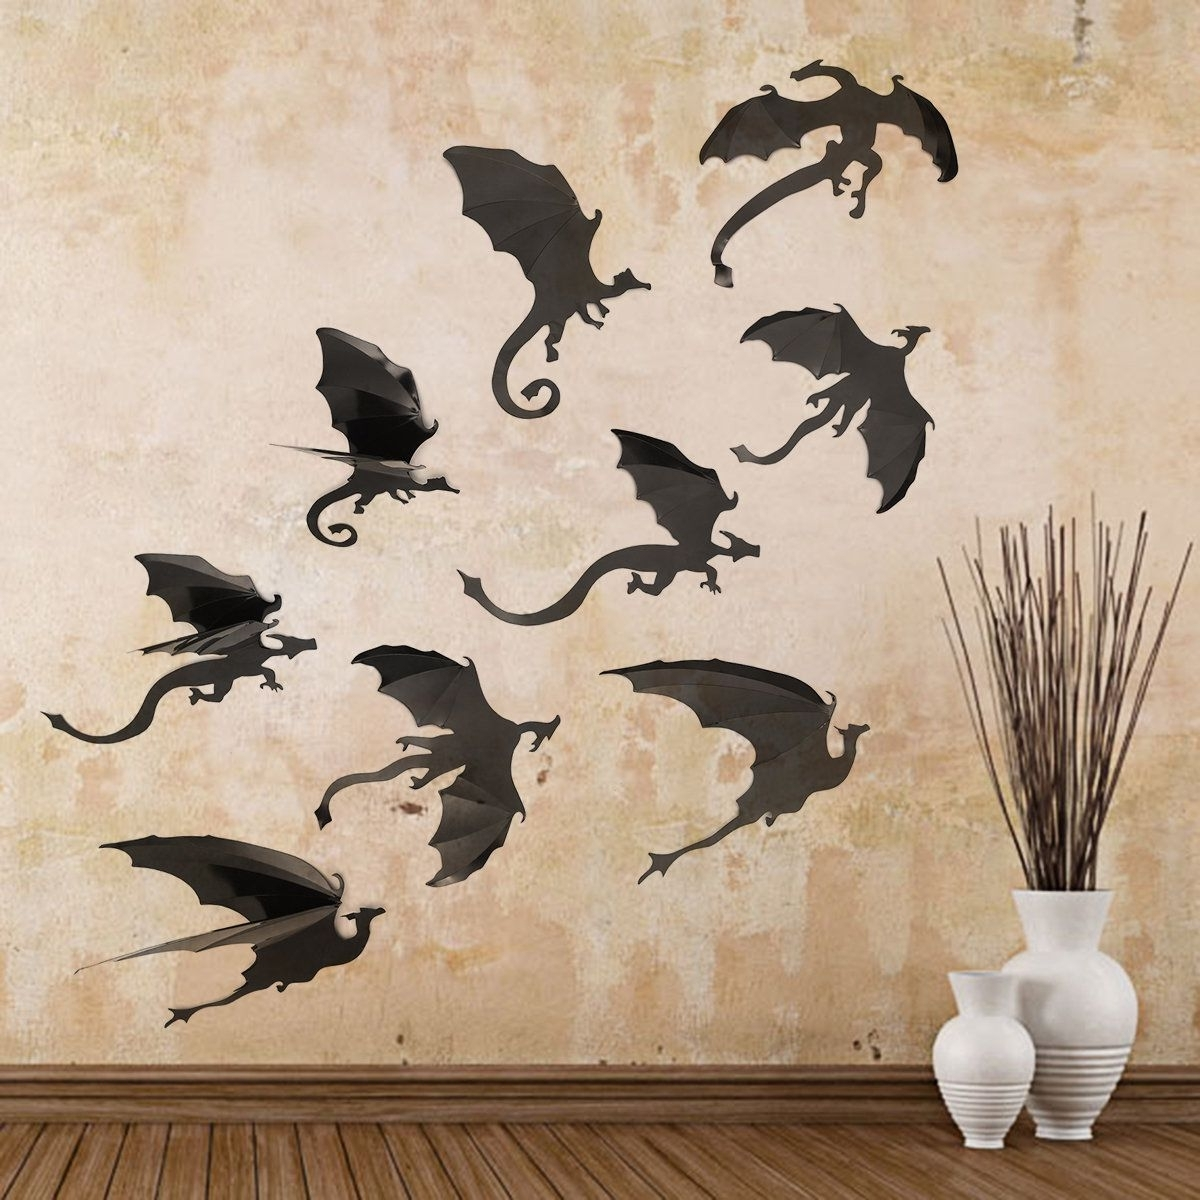 7Pcs/set Halloween Decoration Pvc Wall Stickers 3D Dragon Decorative Pertaining To Best And Newest Dragon Wall Art (Gallery 9 of 15)